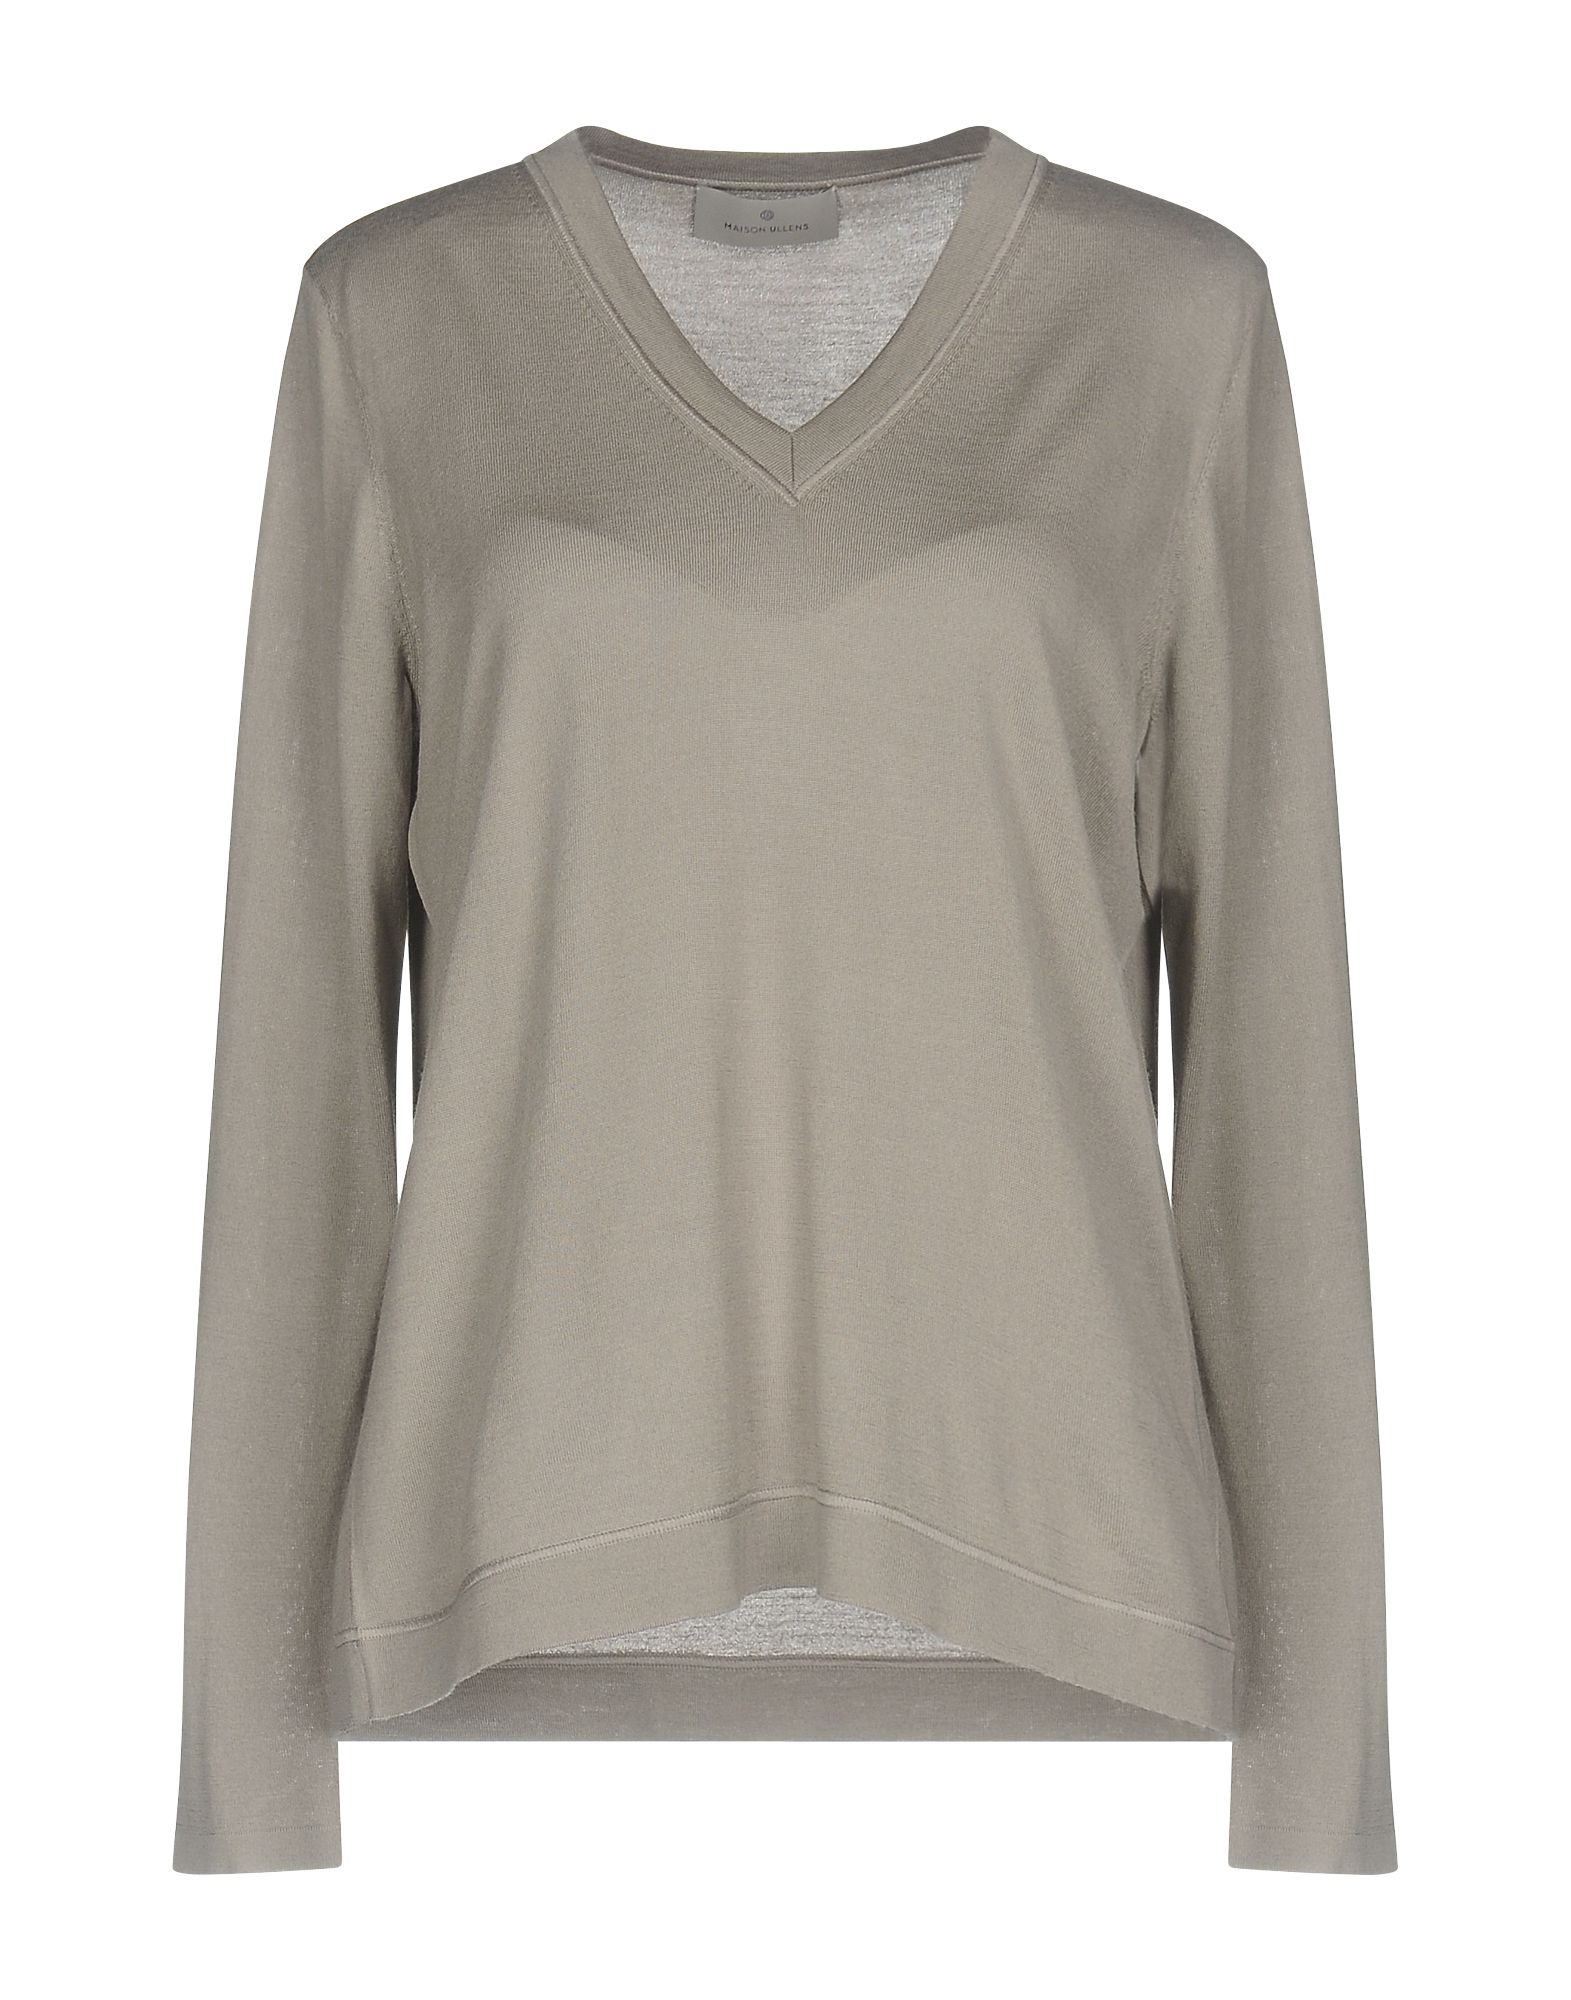 MAISON ULLENS Sweater in Dove Grey